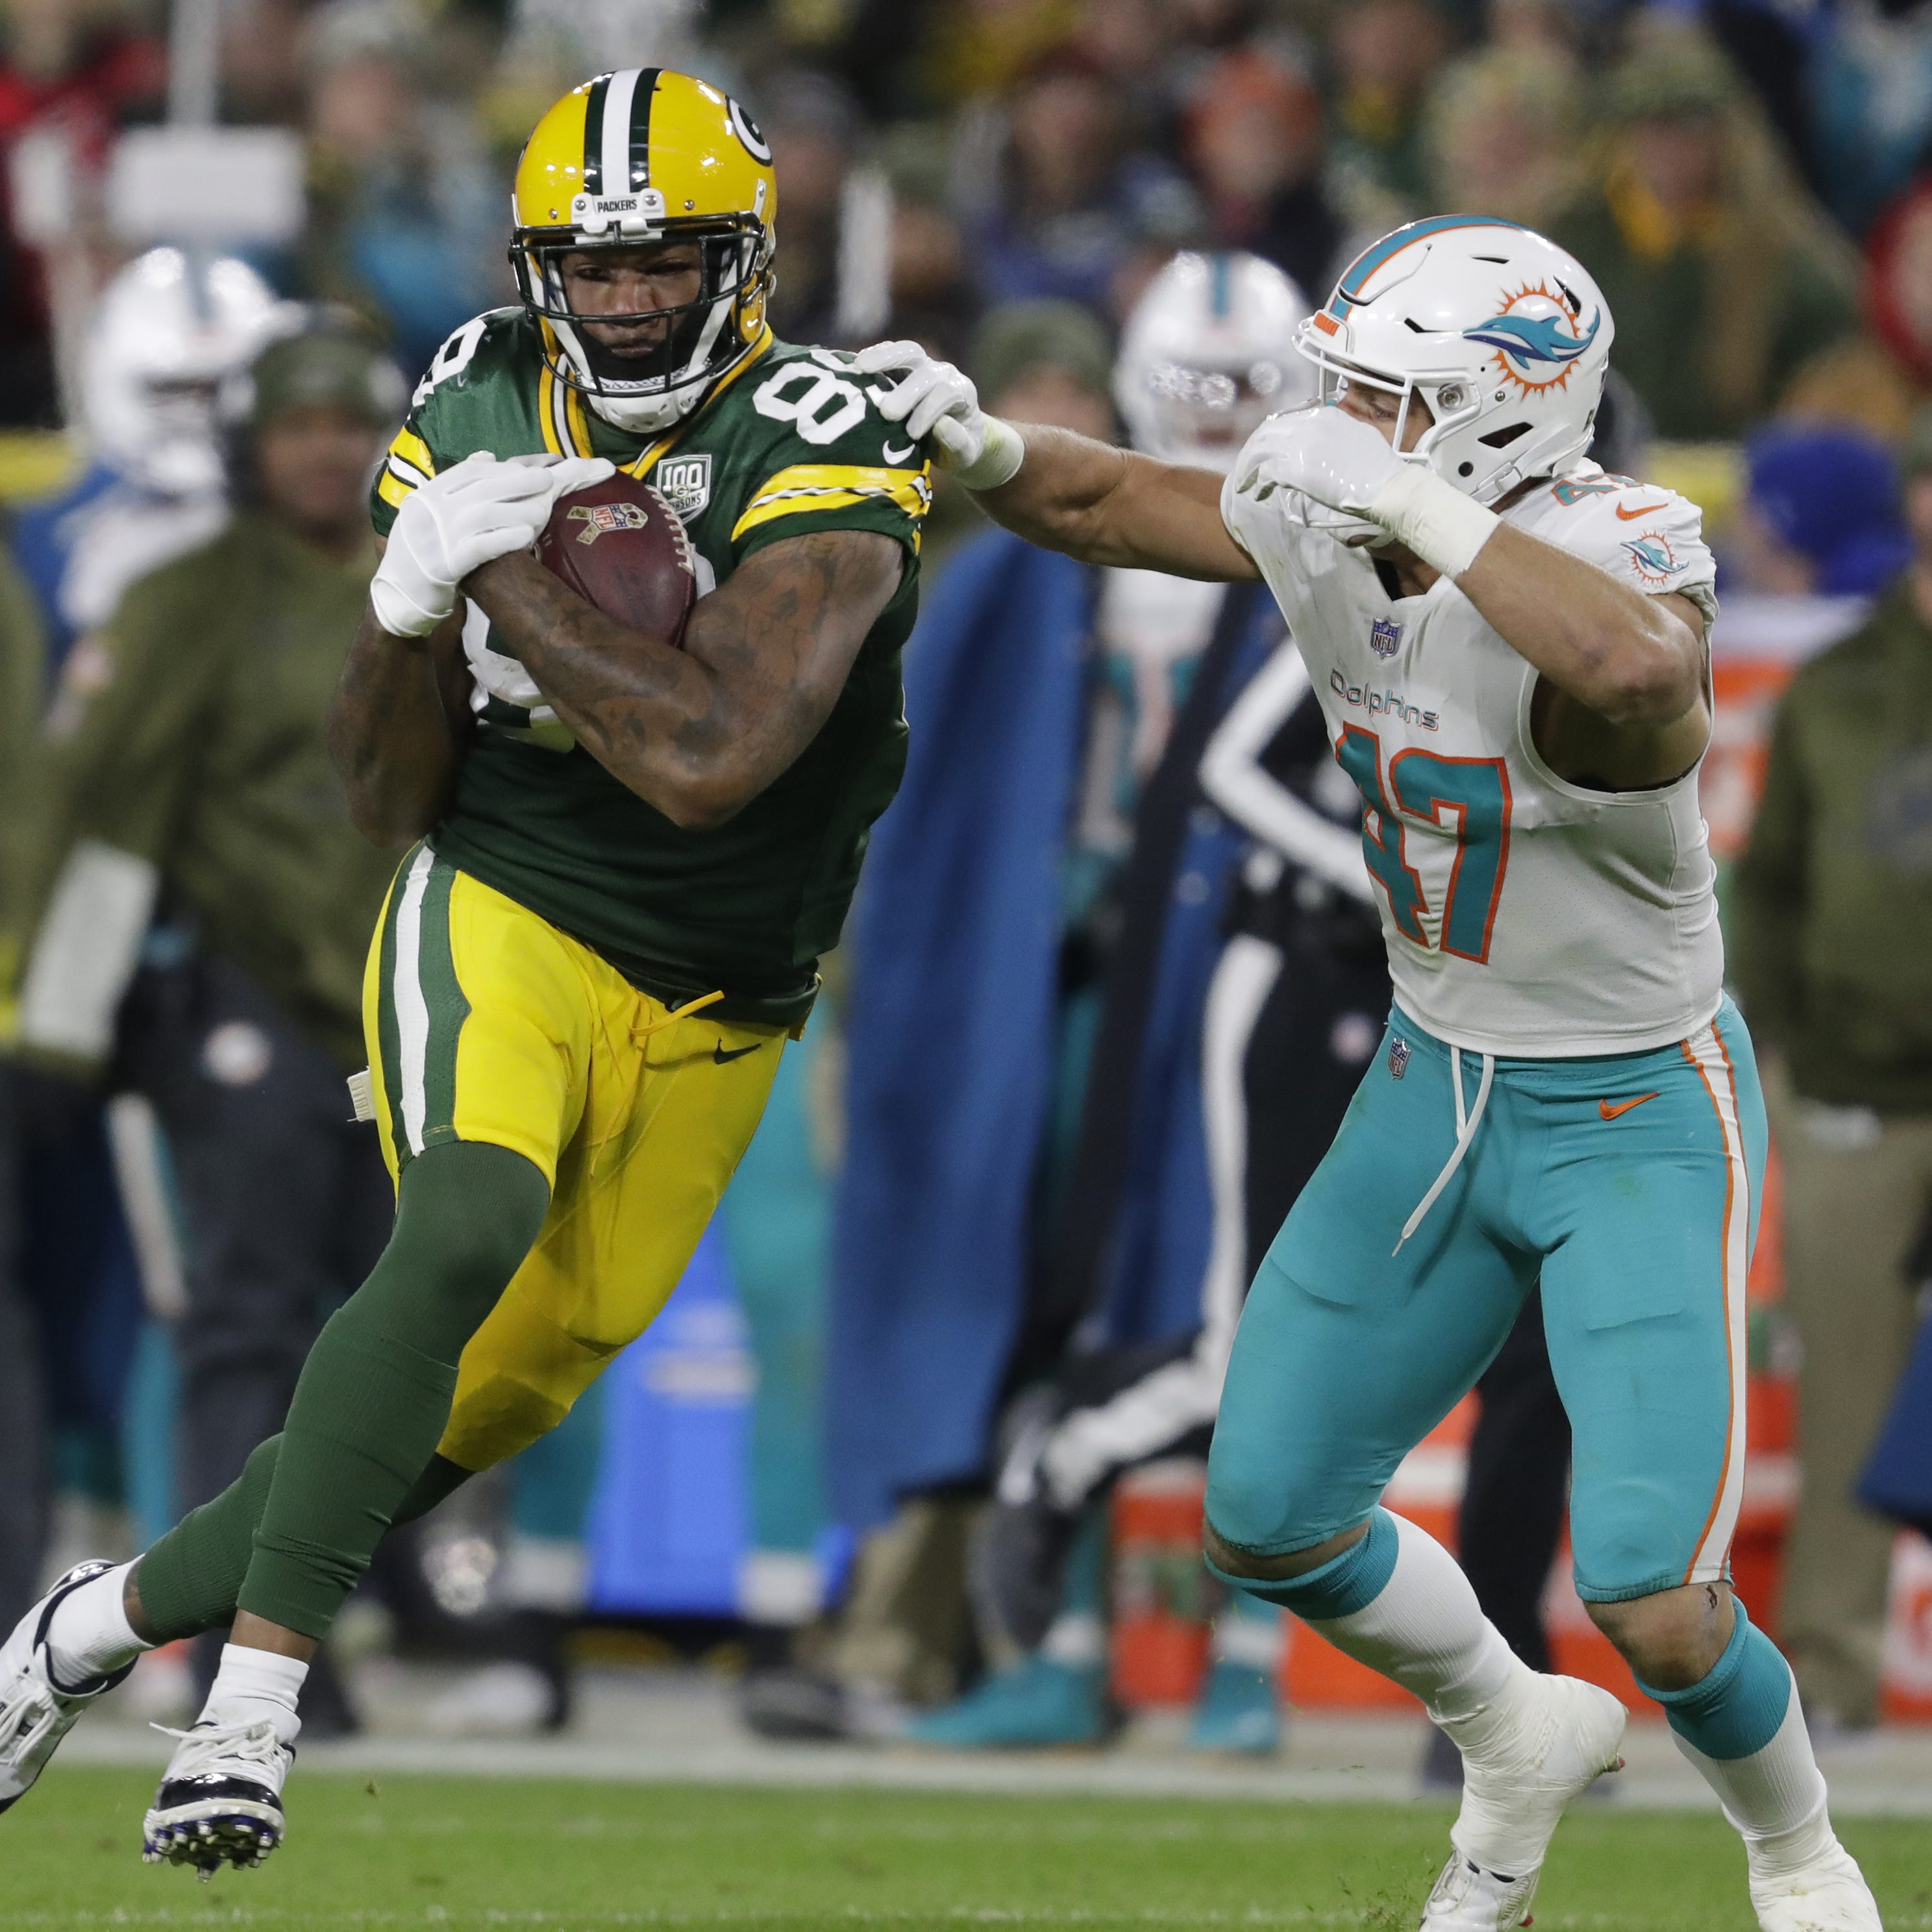 4 Downs: Packers get multiple benefits from using two tight ends